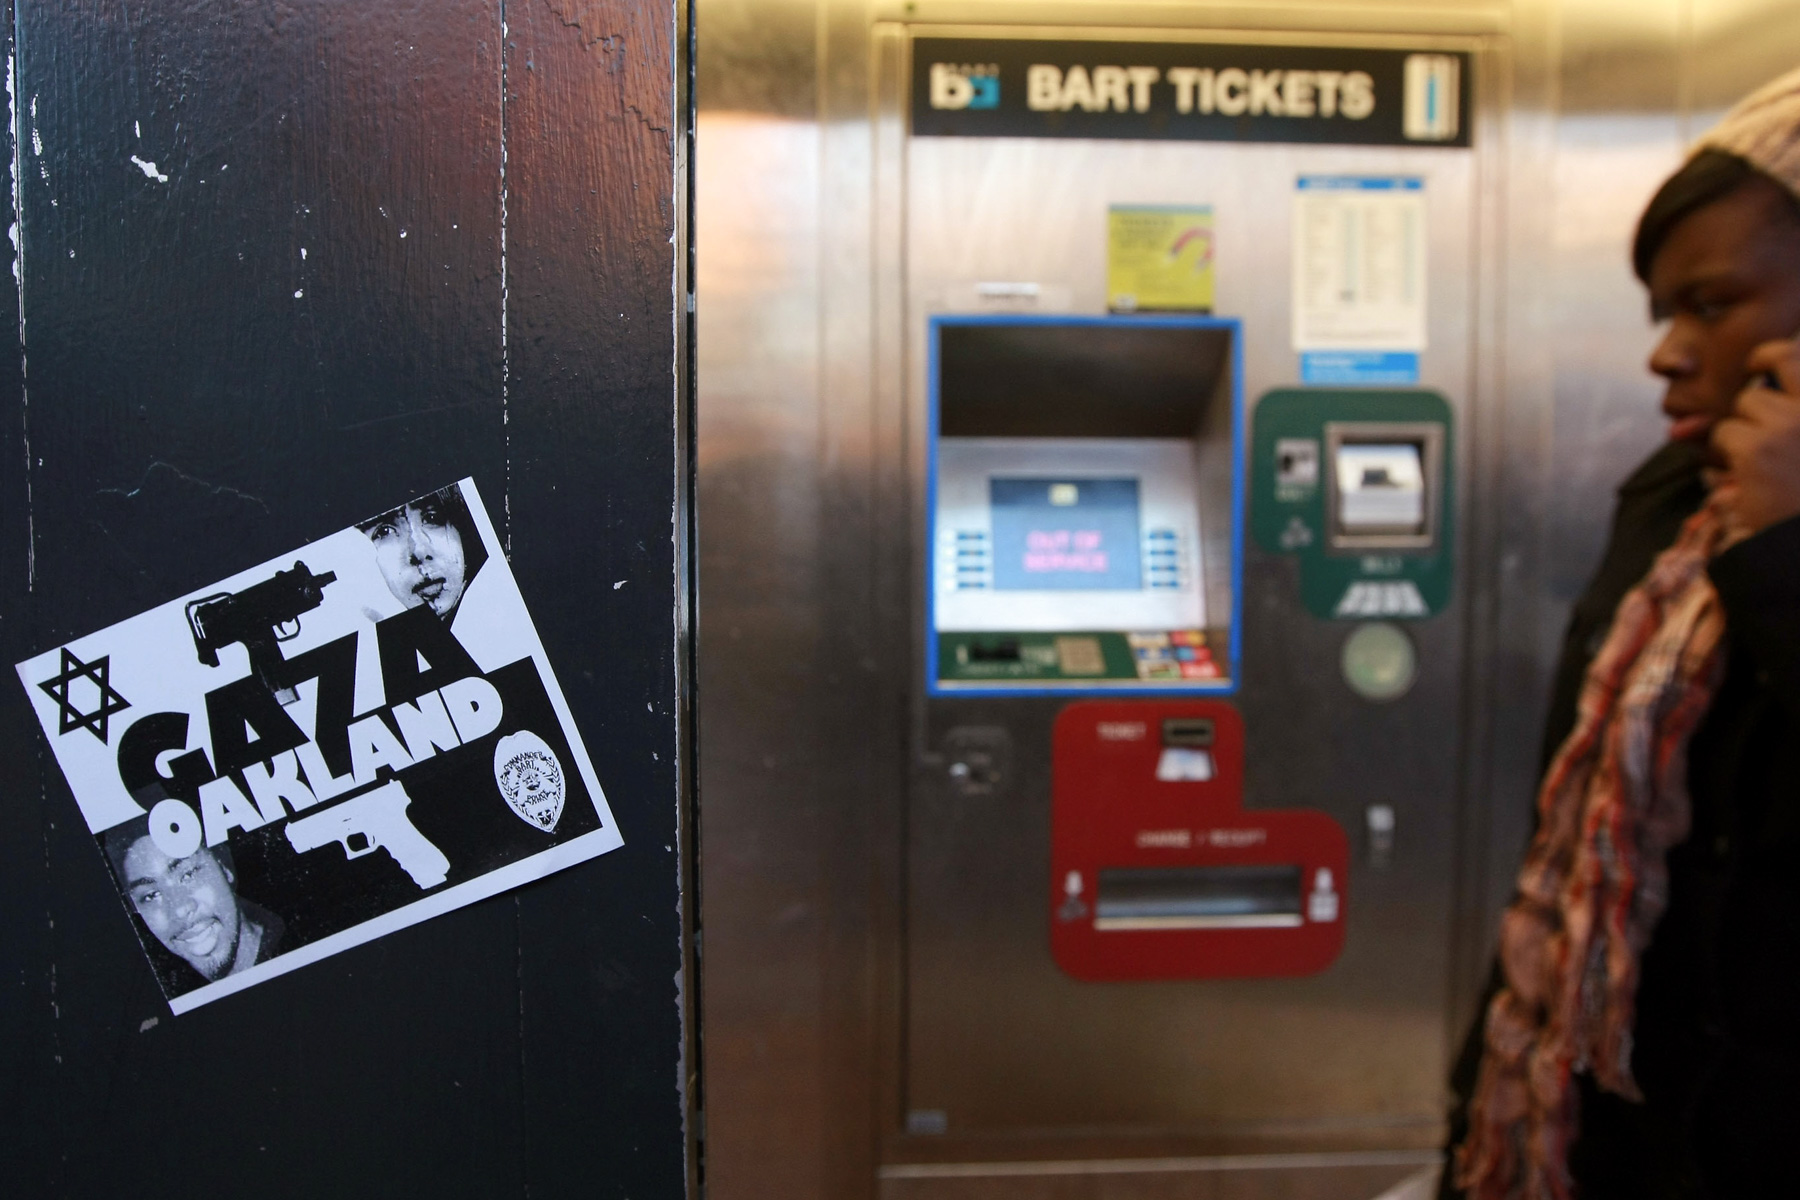 7 January 2009: A sticker with a picture of slain Oscar Grant III on a Bay Area Rapid Transit ticket machine during a demonstration at the Fruitvale station. Grant was killed by a BART police officer. (Photograph by Justin Sullivan/ Getty Images)